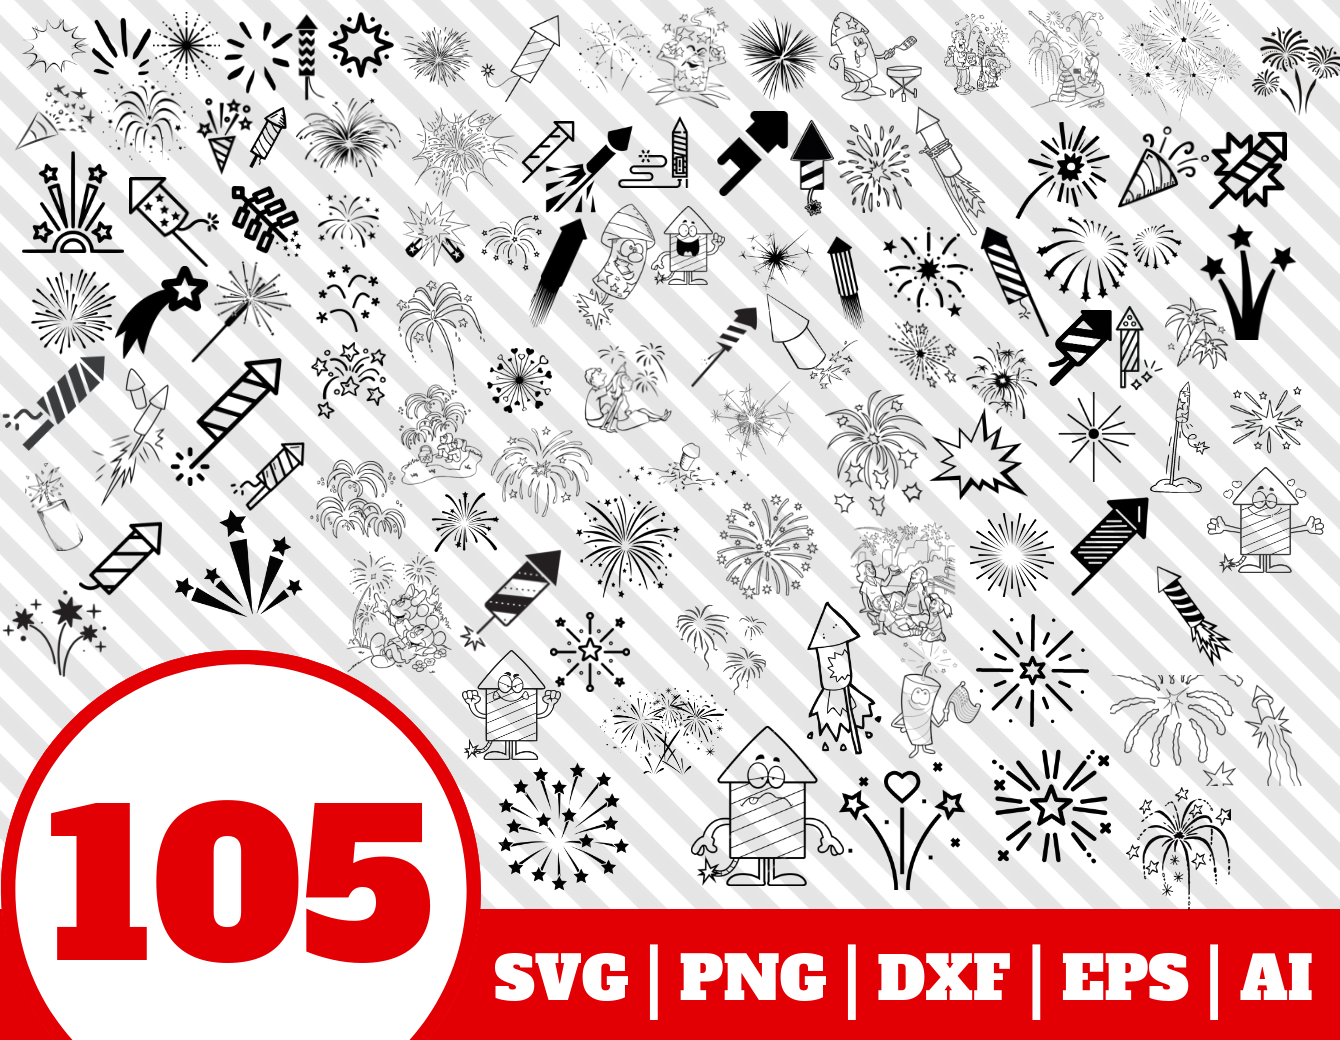 105 Fireworks Svg Bundle Firework Clipart Firework Vector By